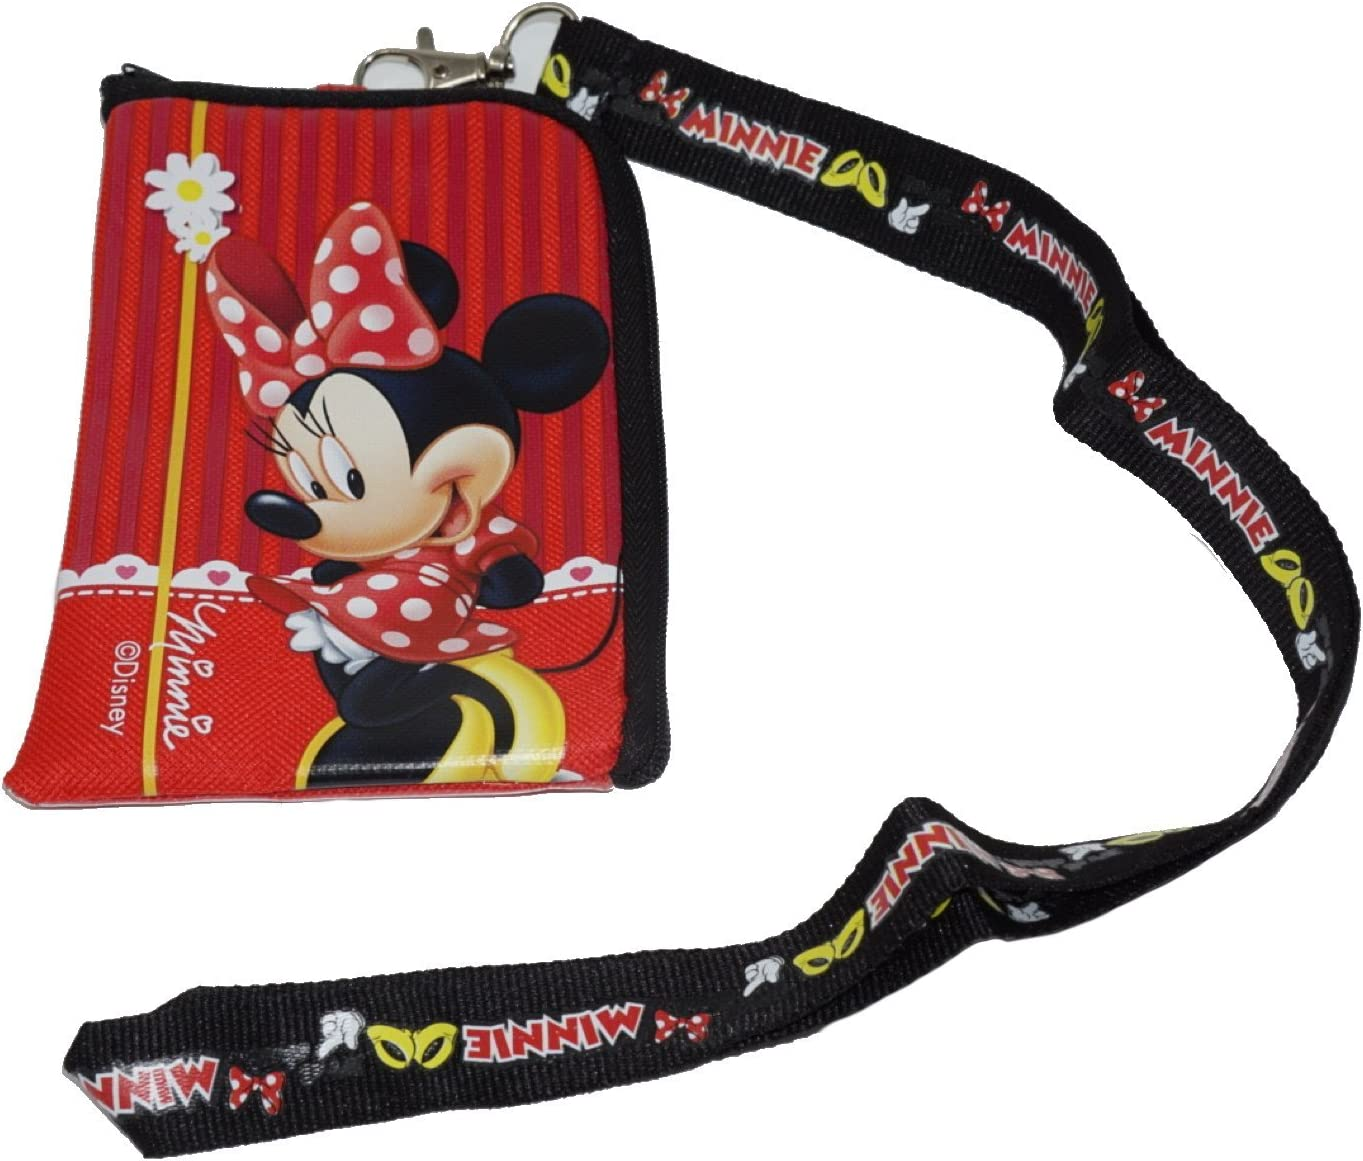 Disney Minnie Mouse Red Lanyard with Cell Phone Case or Coin Purse Pouch